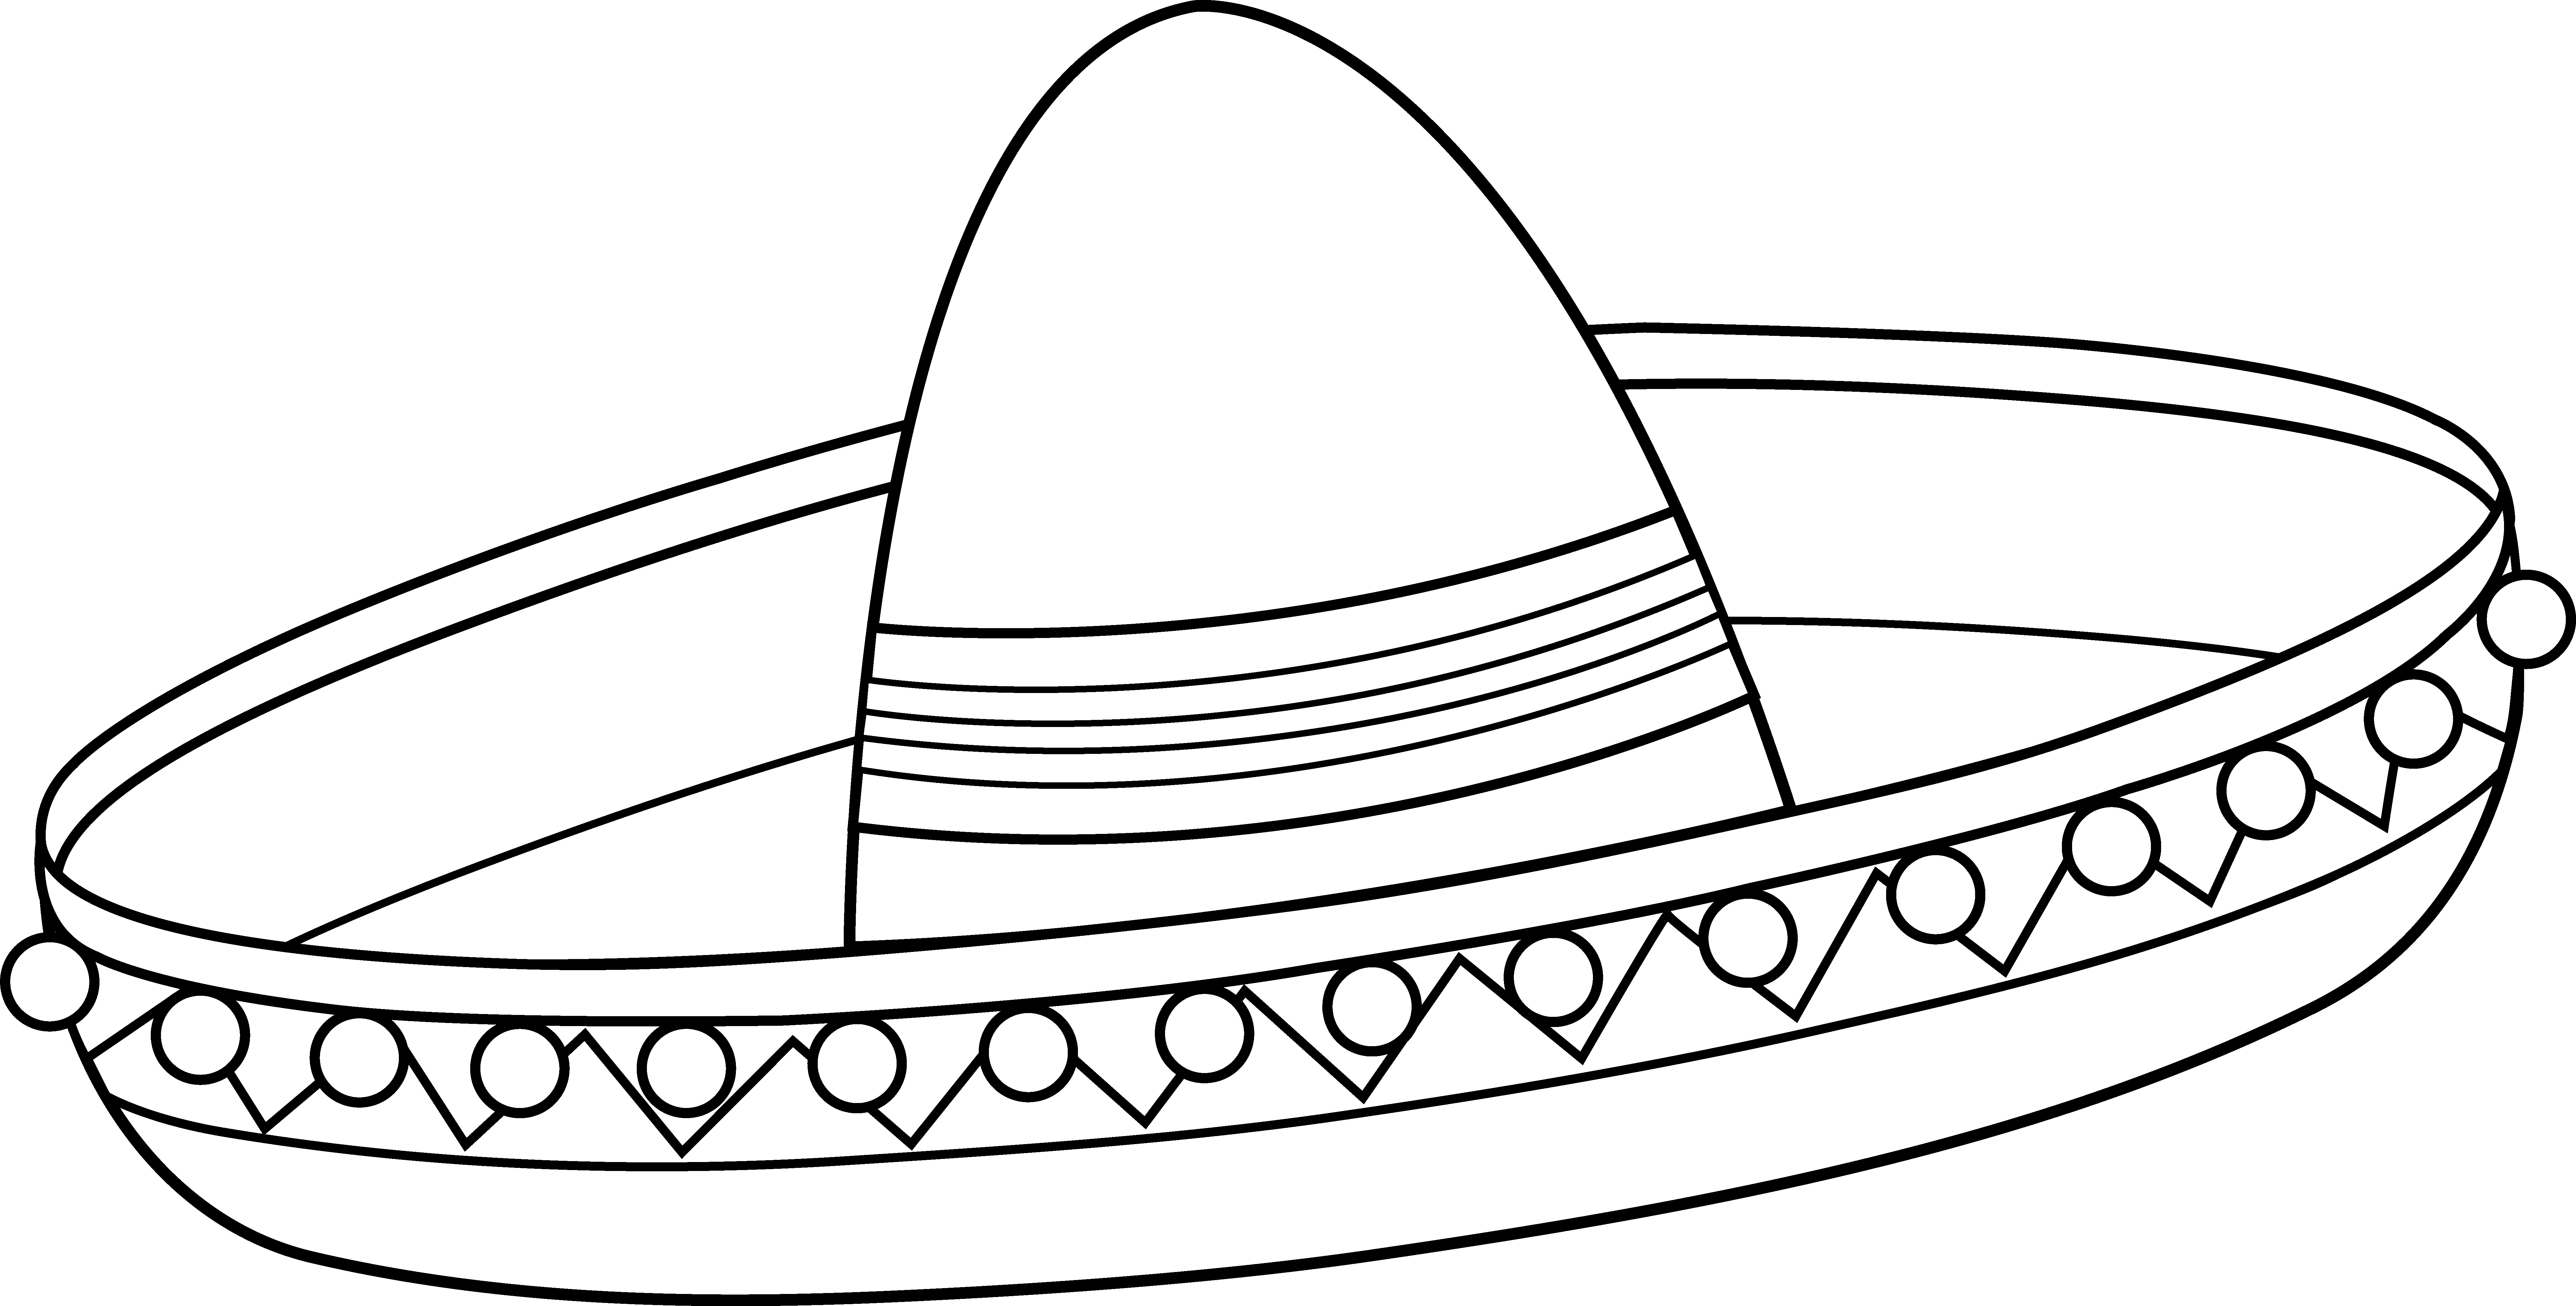 Vector sombrero printable. Mexican coloring page first